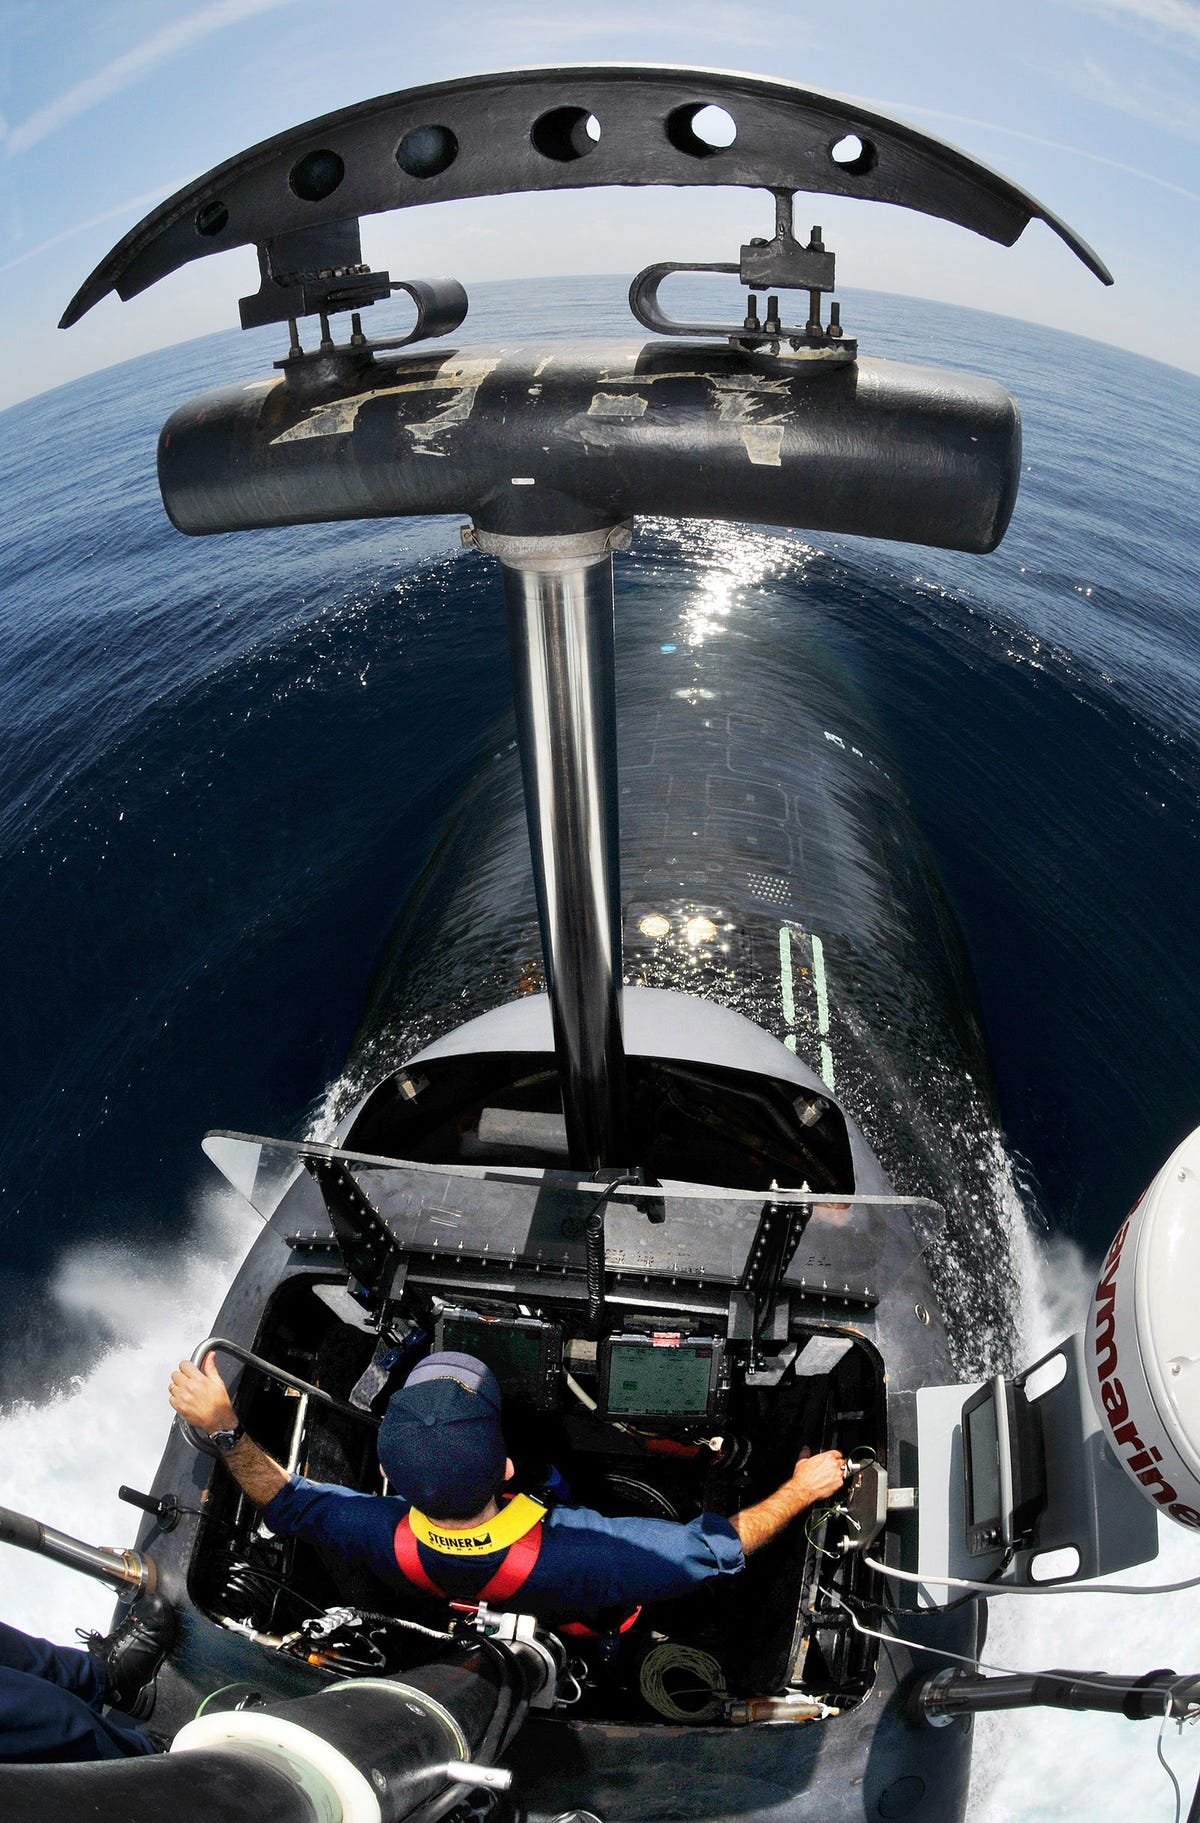 Navy's newest attack submarine shows its capabilities